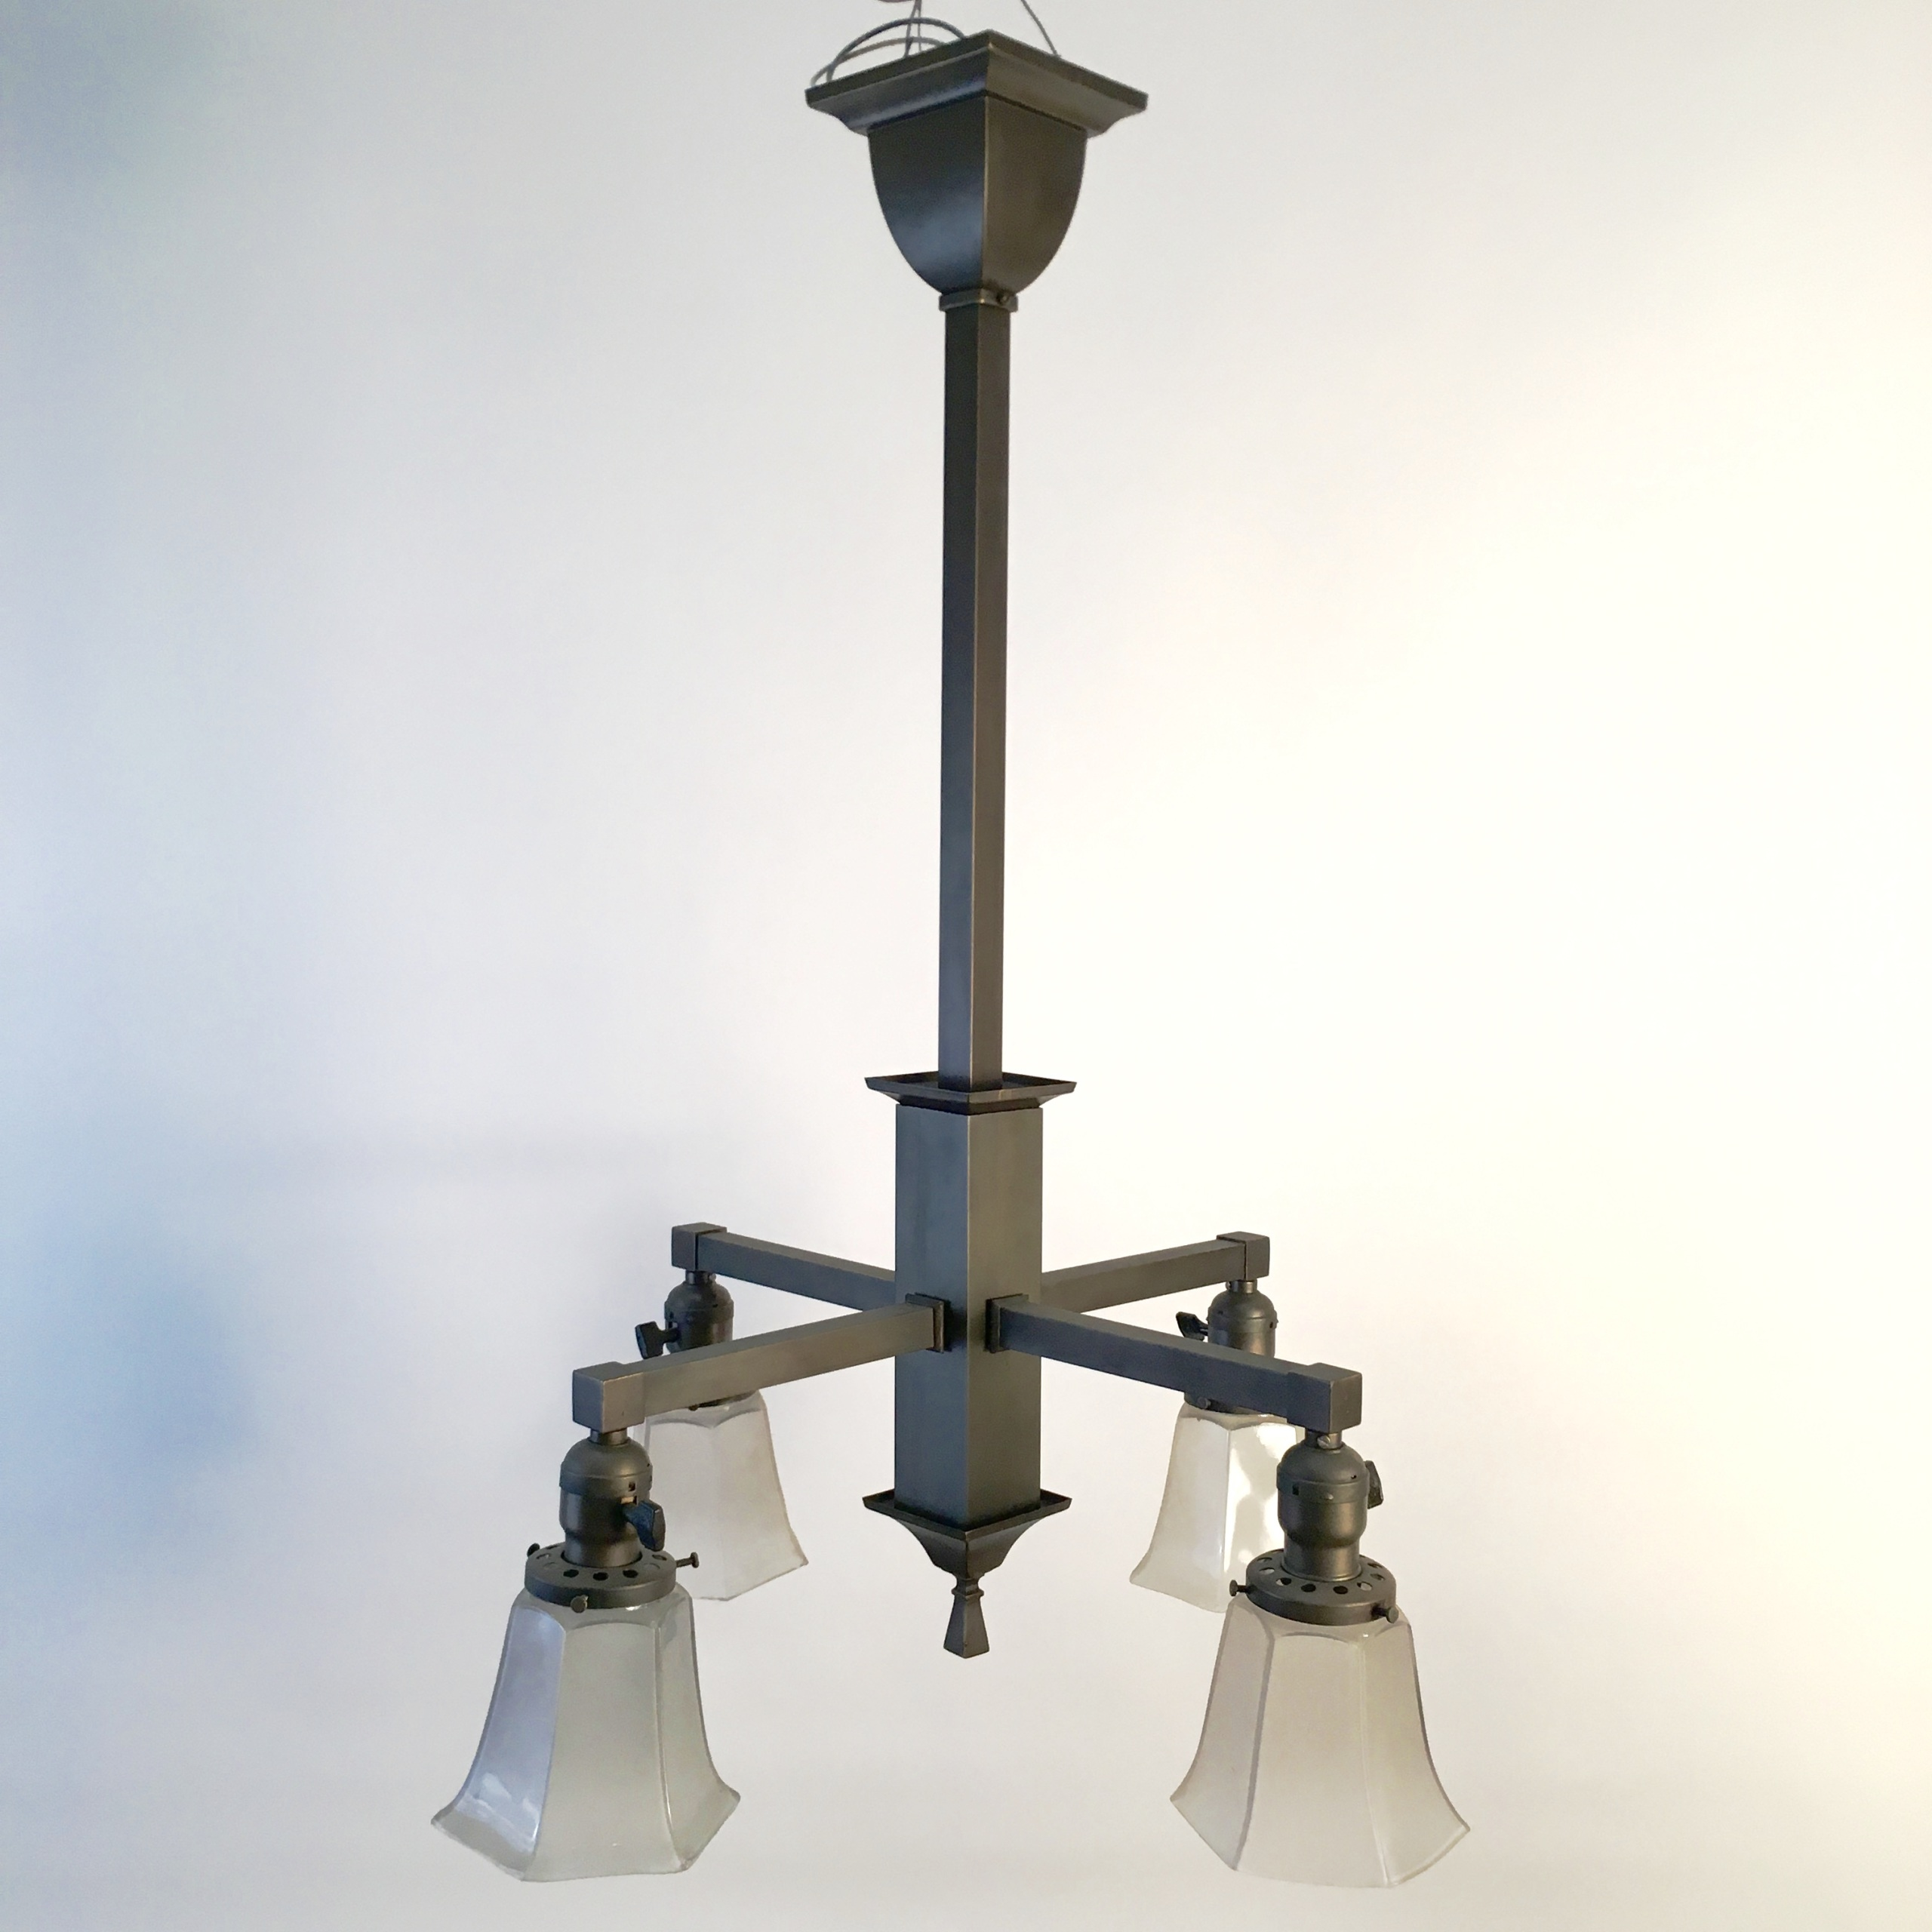 4 Arm Down Light Craftsman Chandelier SOLD